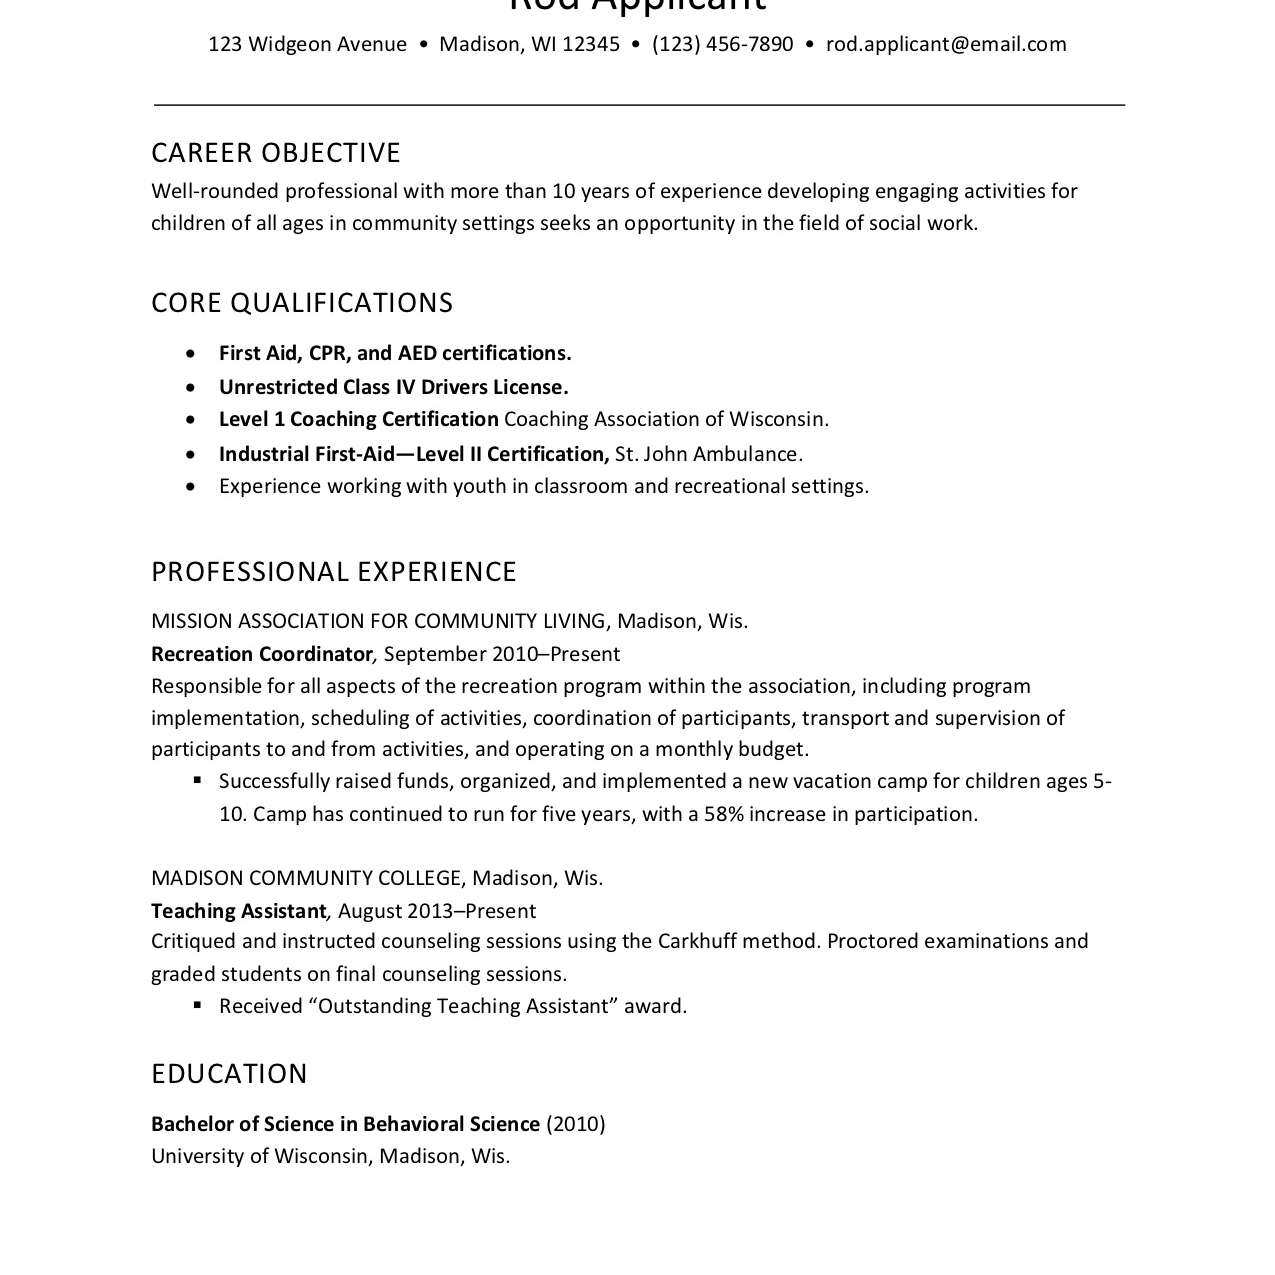 resume example for childcare social services worker child care objective high school Resume Child Care Worker Resume Objective